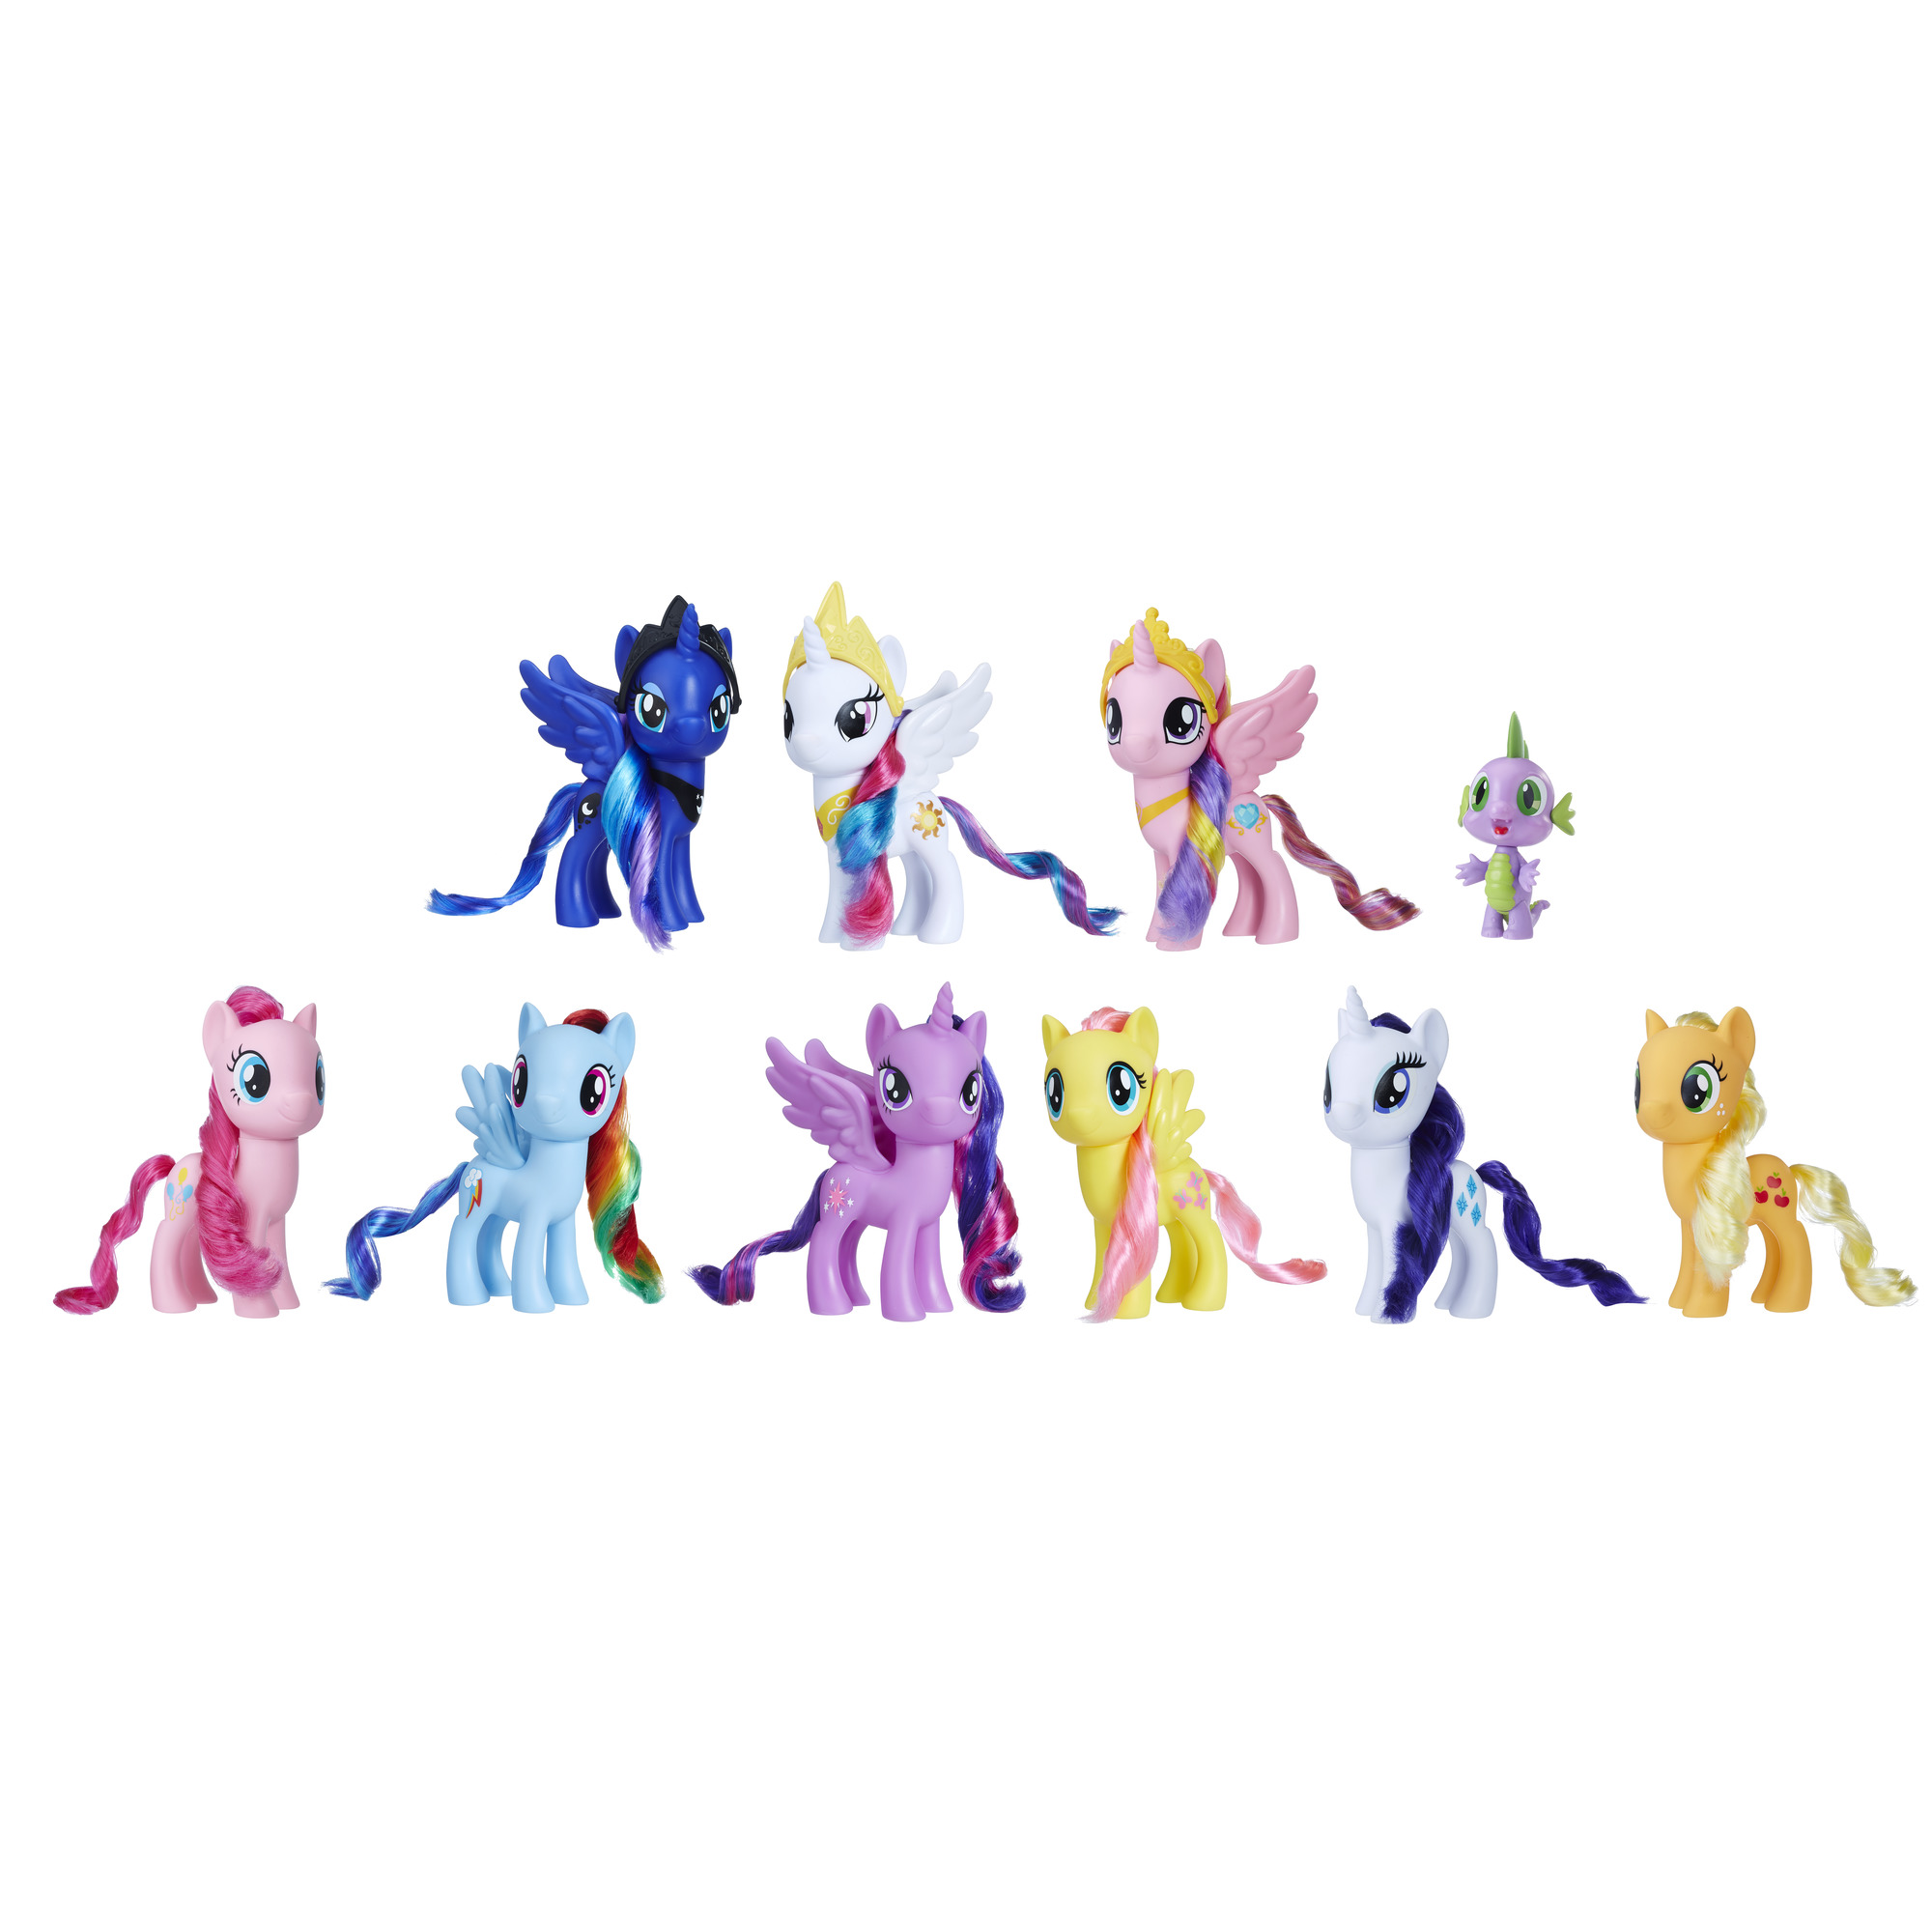 My Little Pony Friendship is Magic Toys Ultimate Equestria Collection � 10 Figure Set... by Hasbro